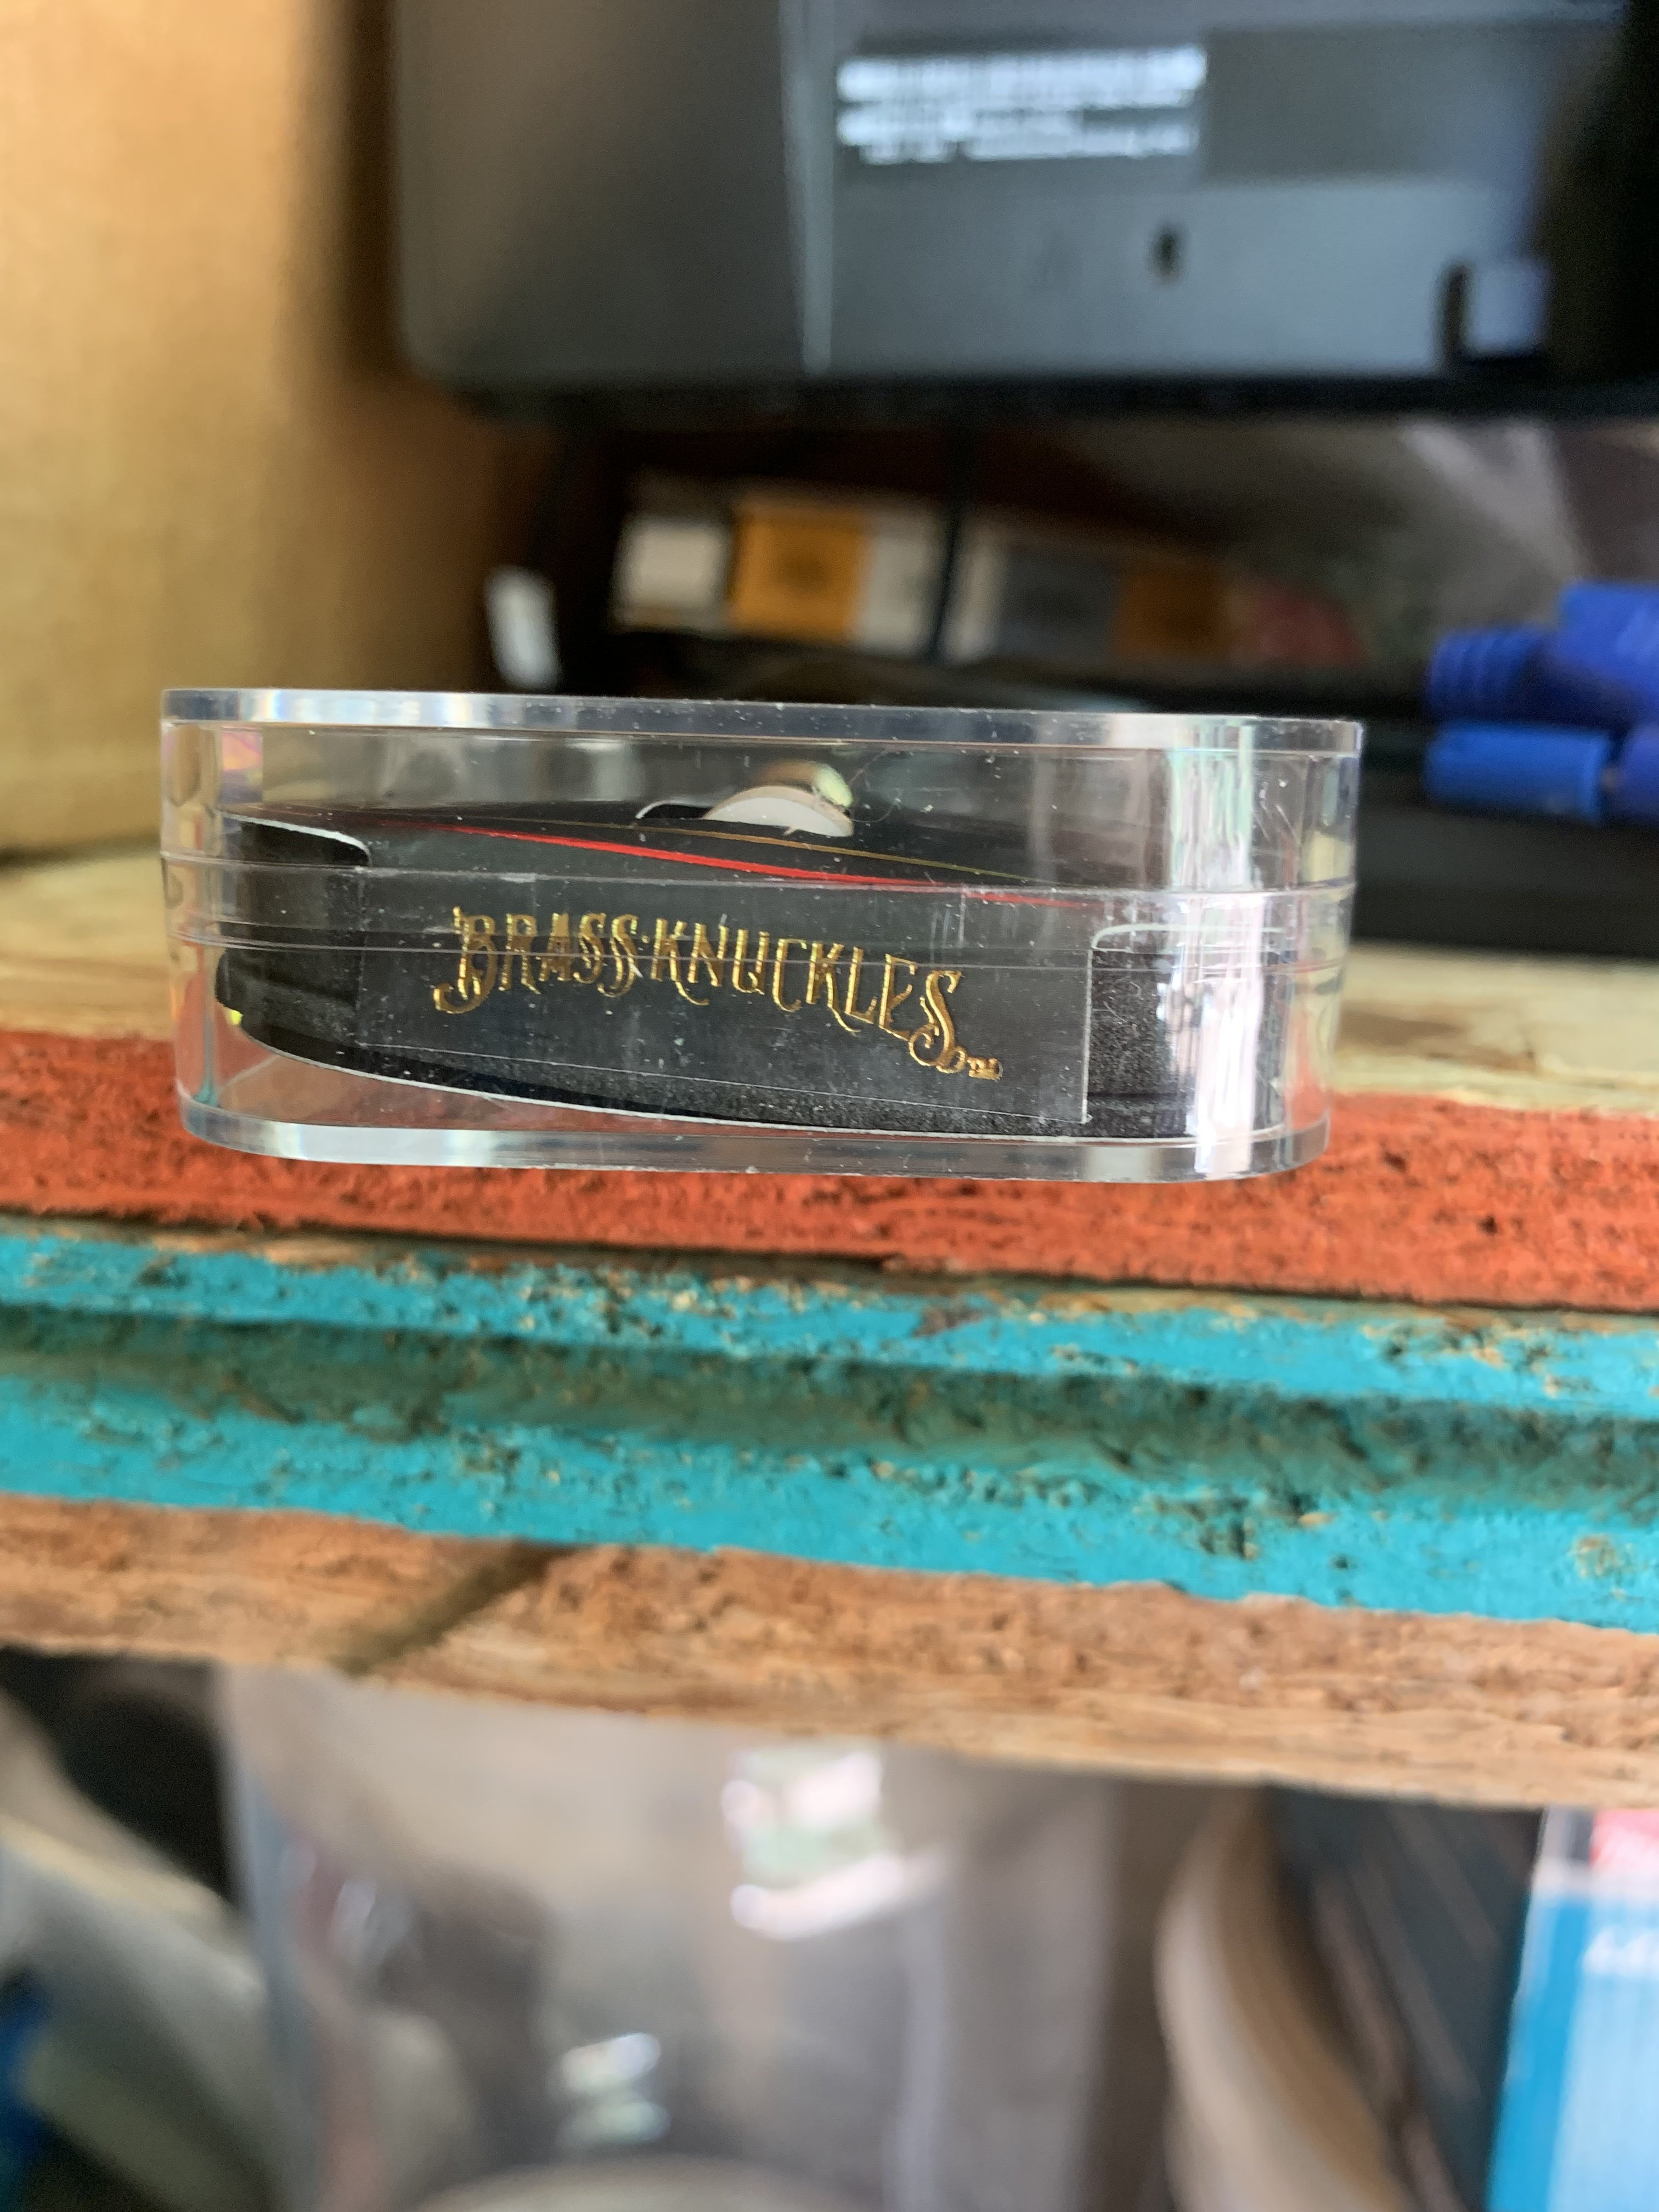 Fake Brass Knuckles Cartridge? | Grasscity Forums - The #1